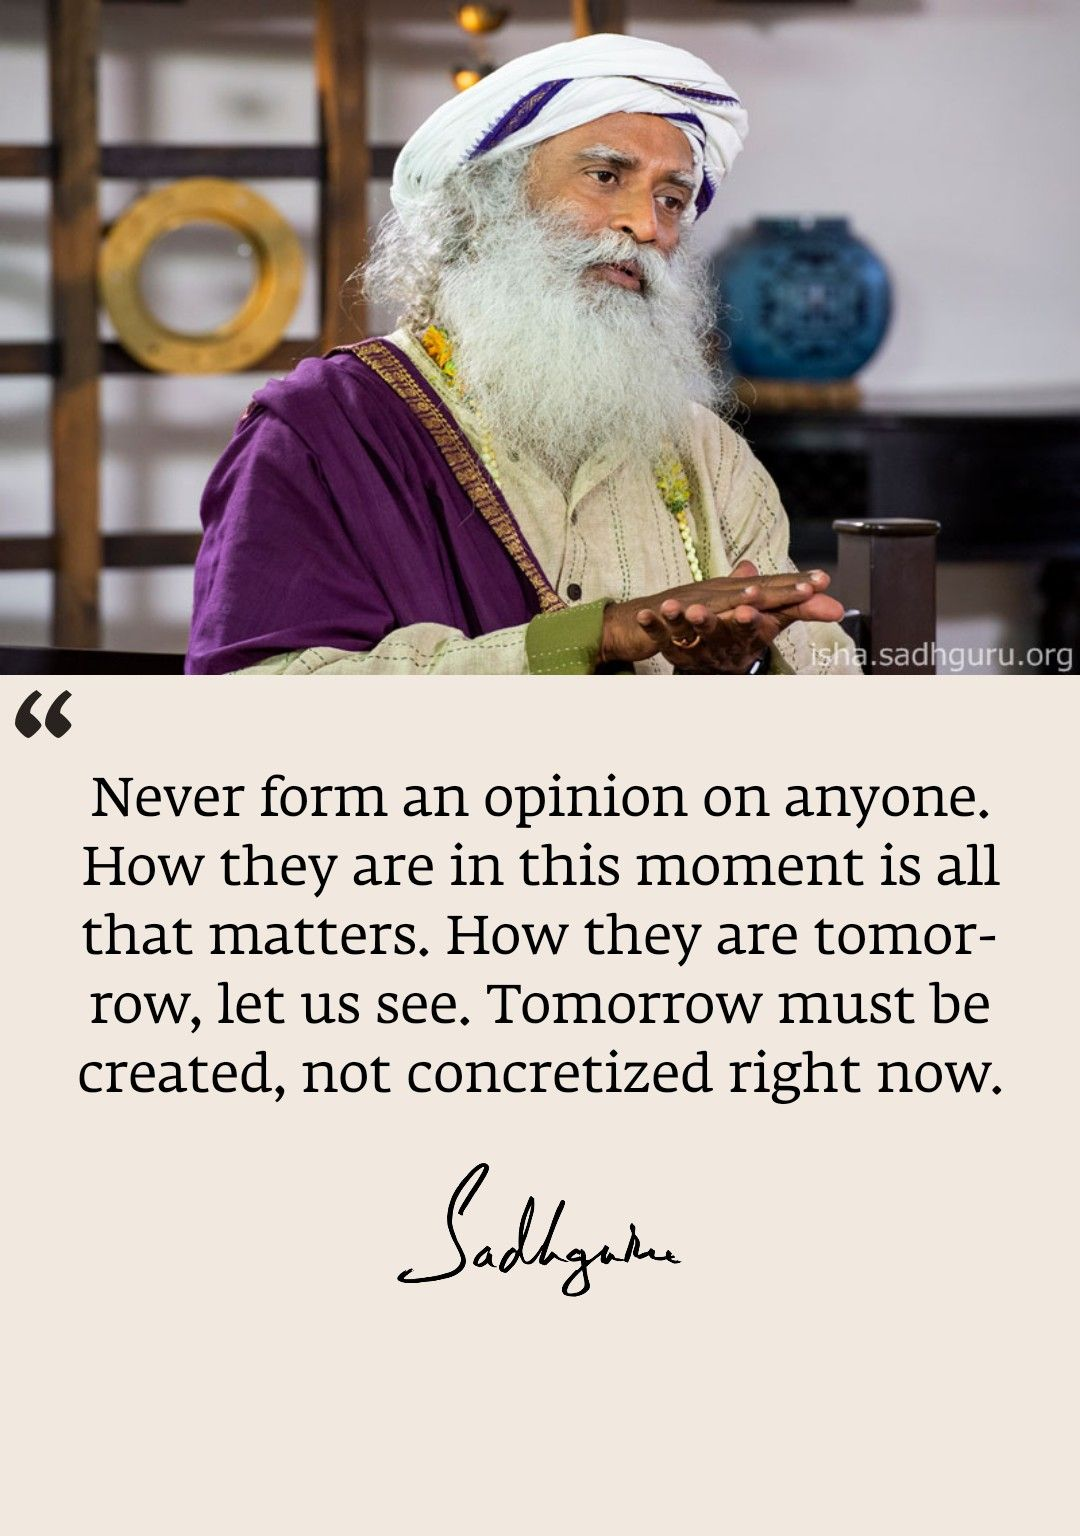 Inthemoment Guru Quotes Daily Inspiration Quotes Soft Heart Quotes